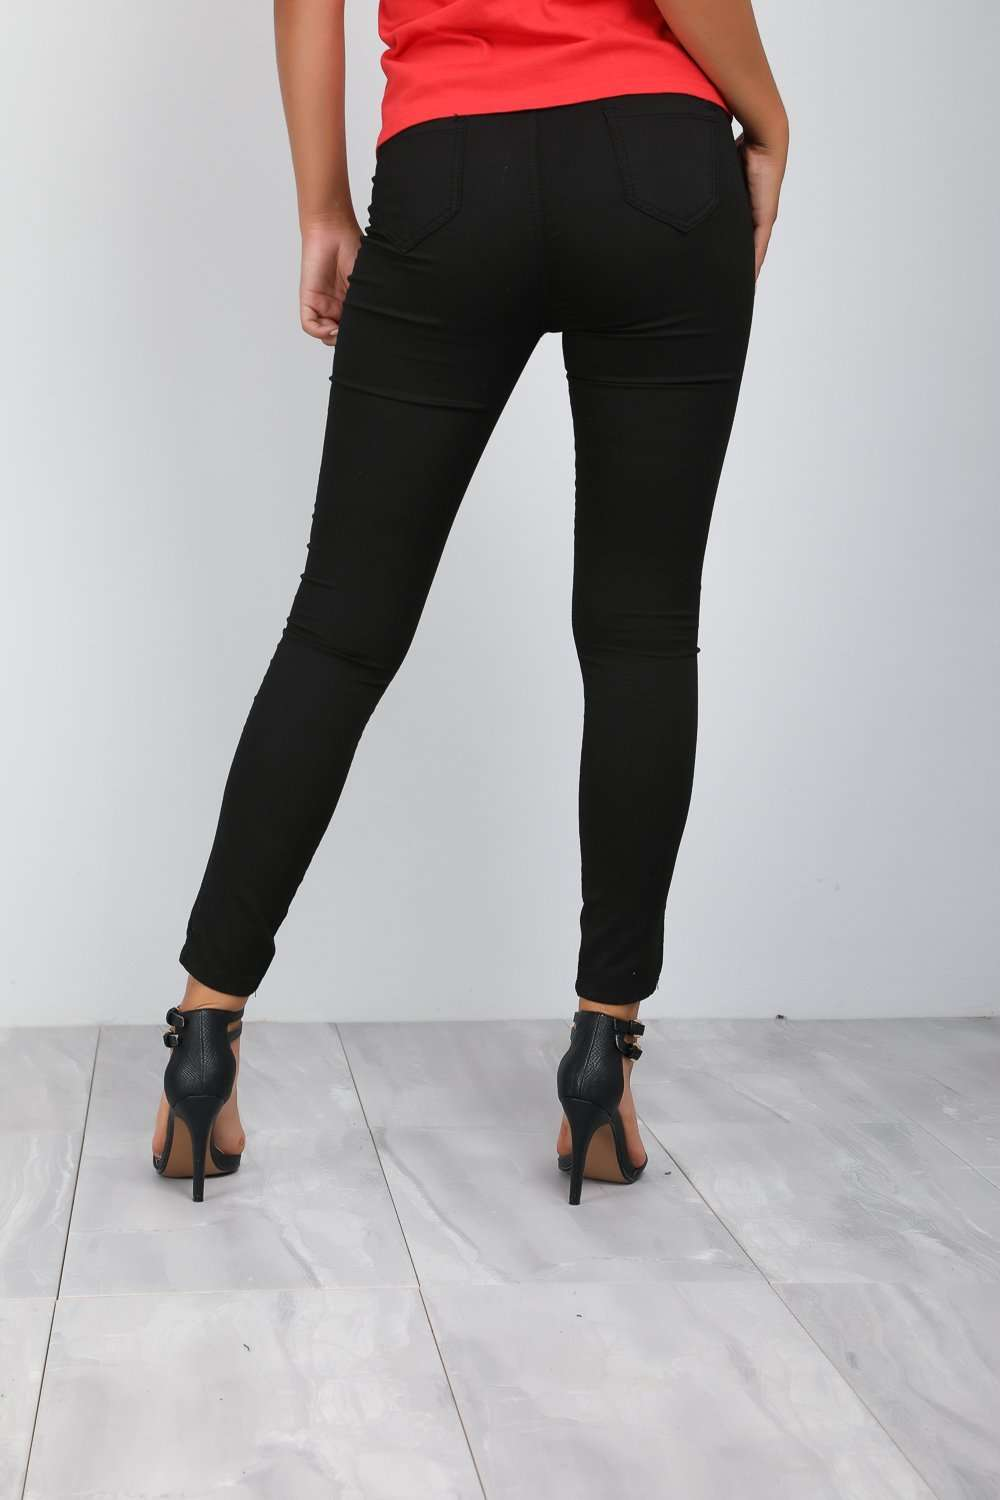 High Waisted Black Stretch Skinny Jeans - bejealous-com